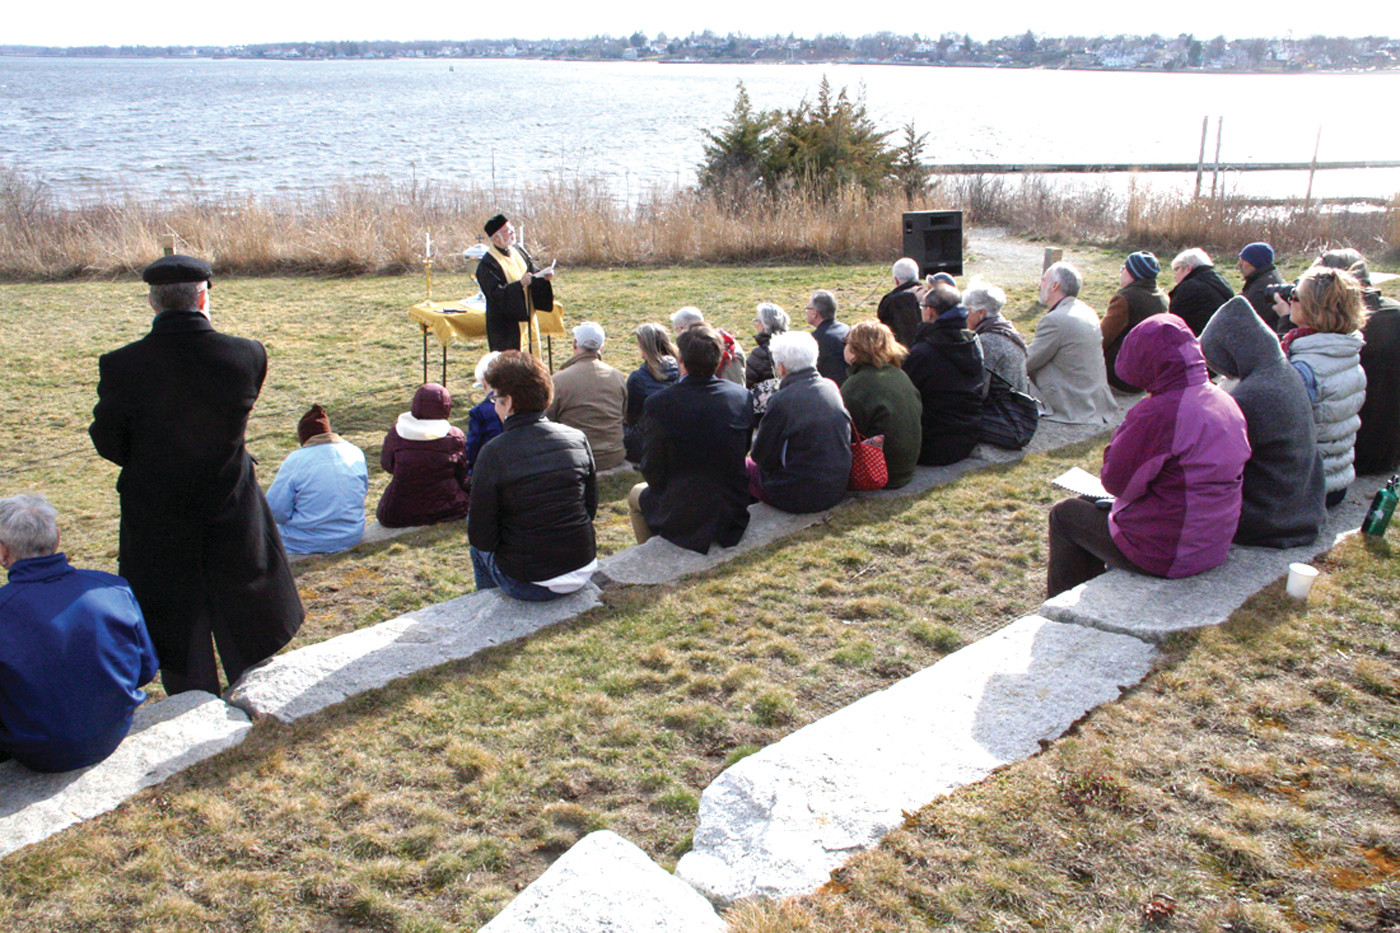 WATER, SOURCE OF LIFE: The Rev. Andrew G. George, pastor of the Church of the Annunciation Greek Orthodox Parish of Greater Providence, led a blessing of waters outside the Fields Point headquarters of Save The Bay Saturday afternoon.